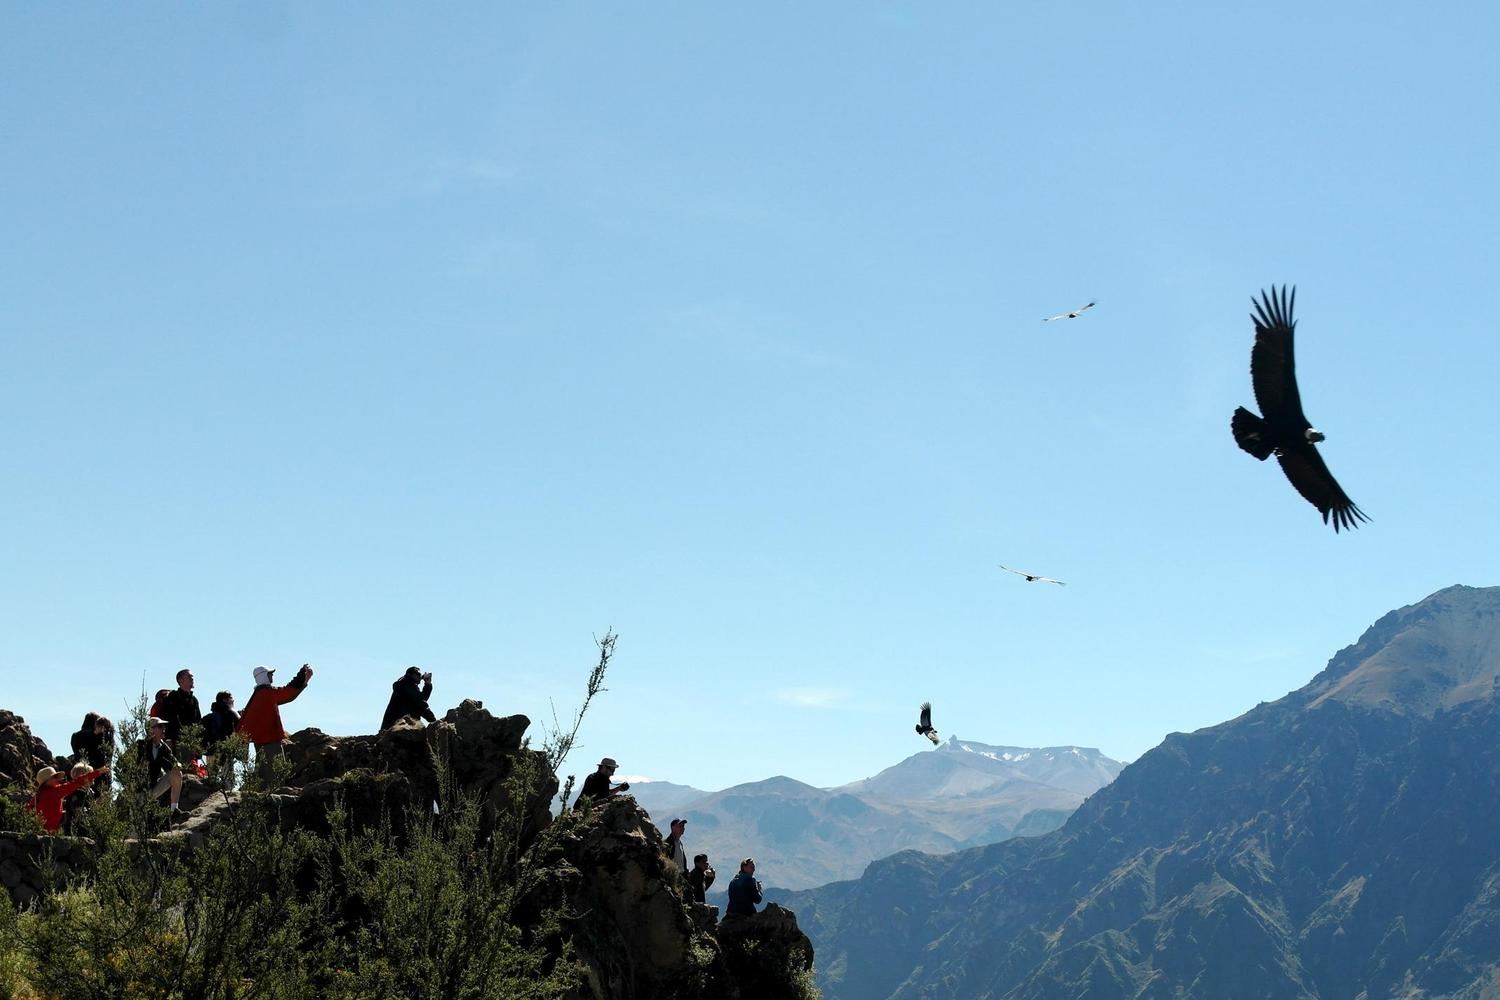 Condors rising up from the Colca Canyon on the morning thermals